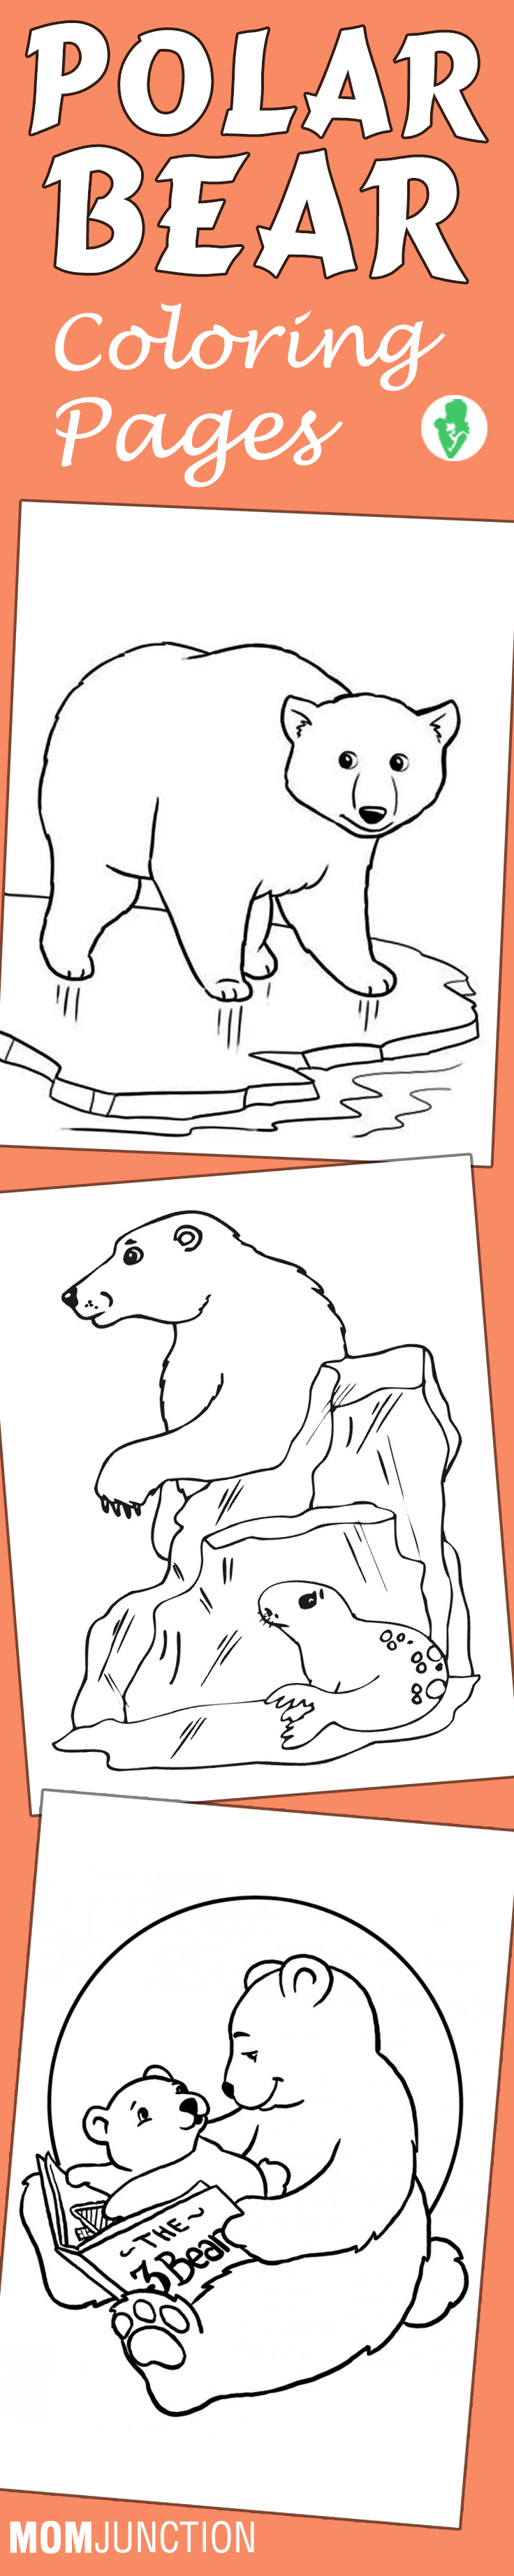 top 10 free printable polar bear coloring pages online animals coloring pages polar bear. Black Bedroom Furniture Sets. Home Design Ideas